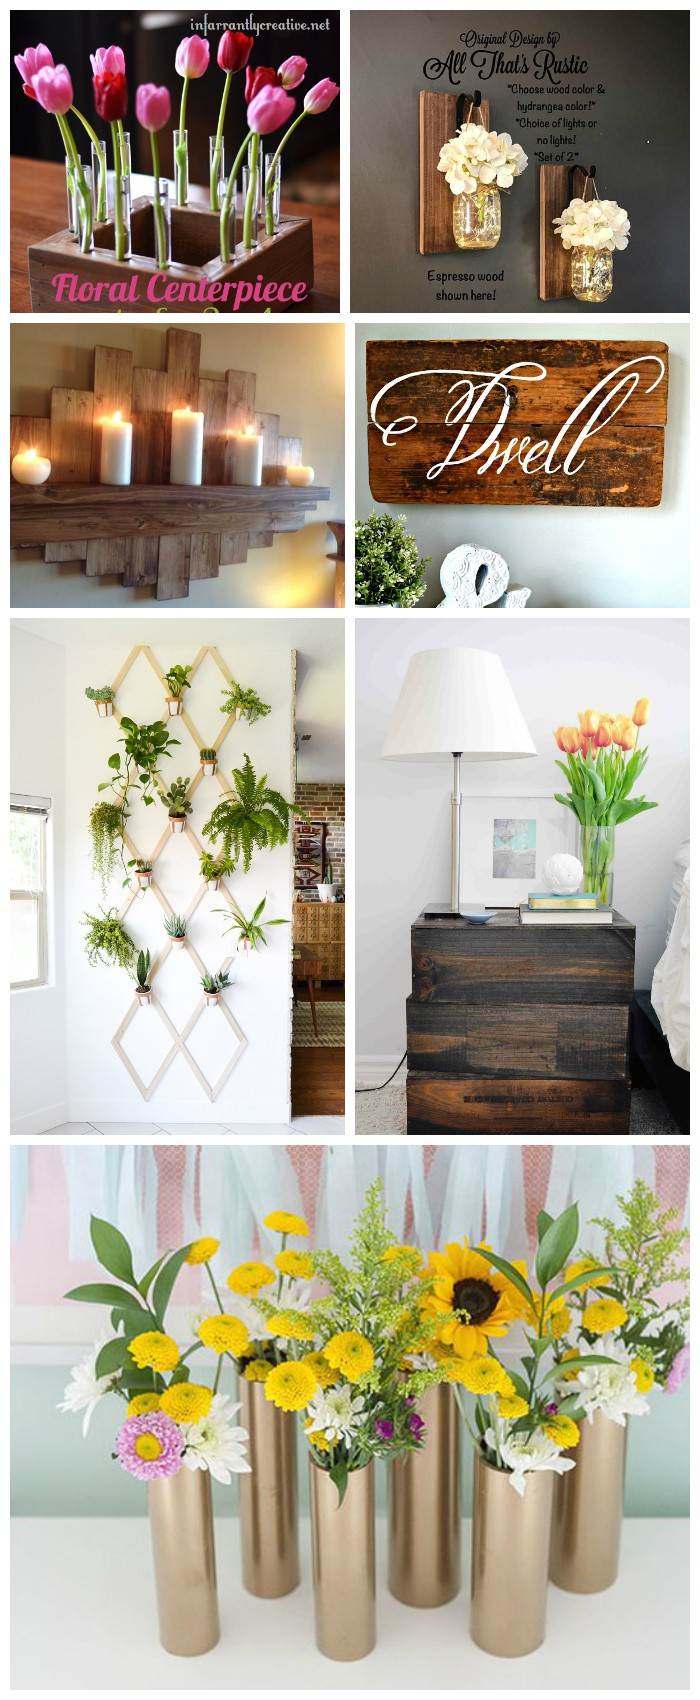 DIY Home Decor Ideas That Will Brighten Up Your Space 1 DIY Home Decor Ideas To Beautify Your Space